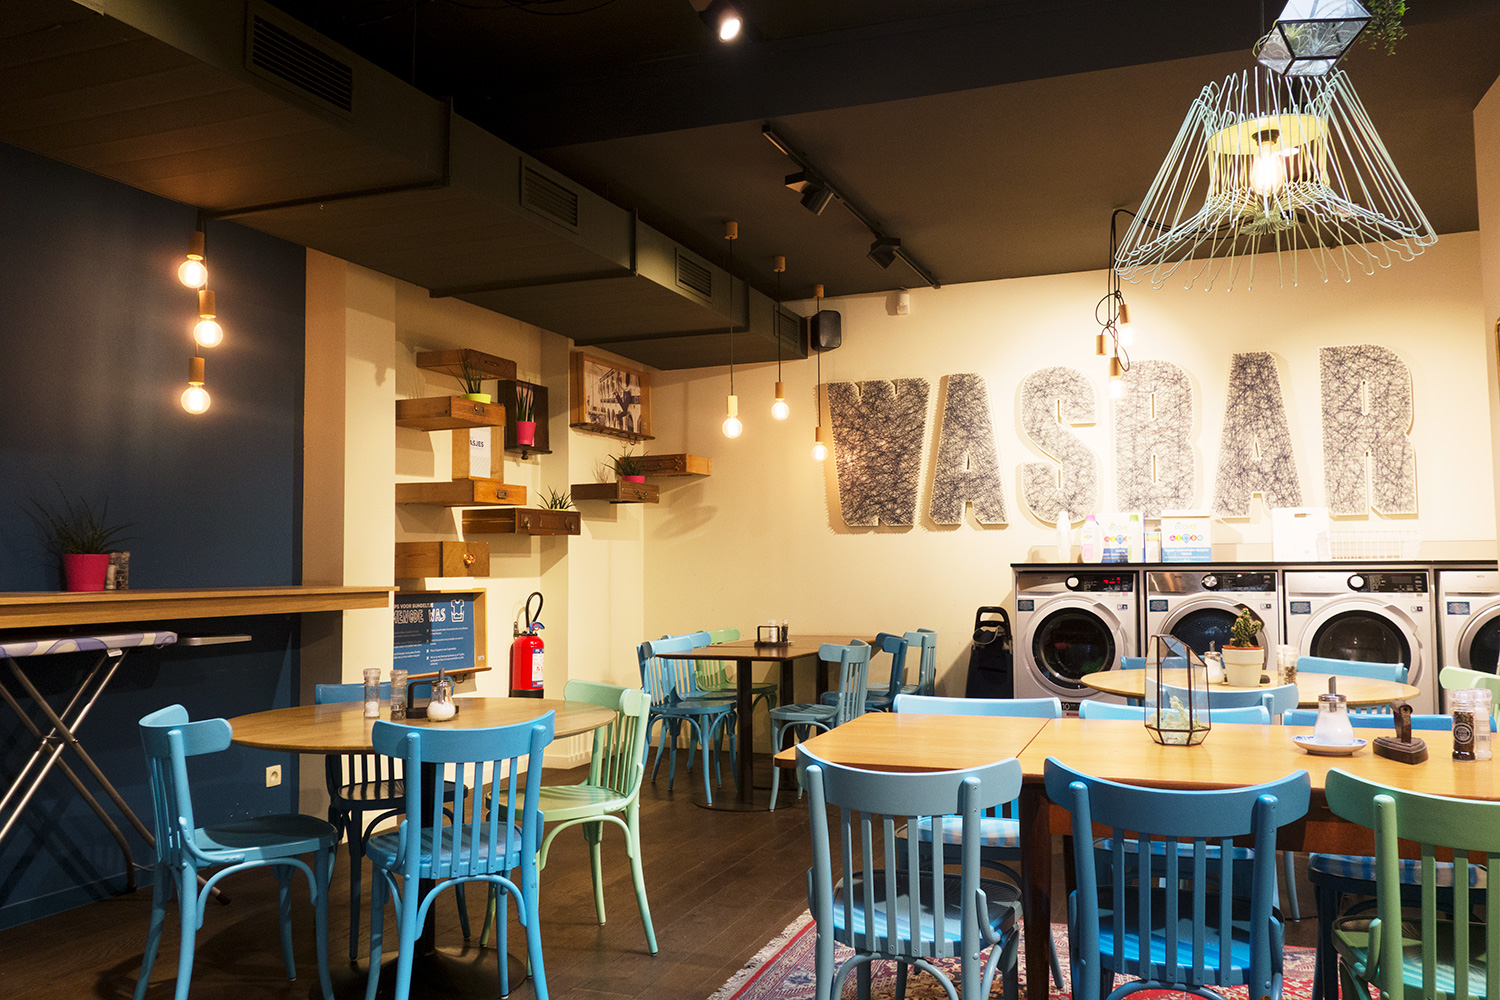 Inside WASBAR in Antwerp, with blue chairs and washing machines